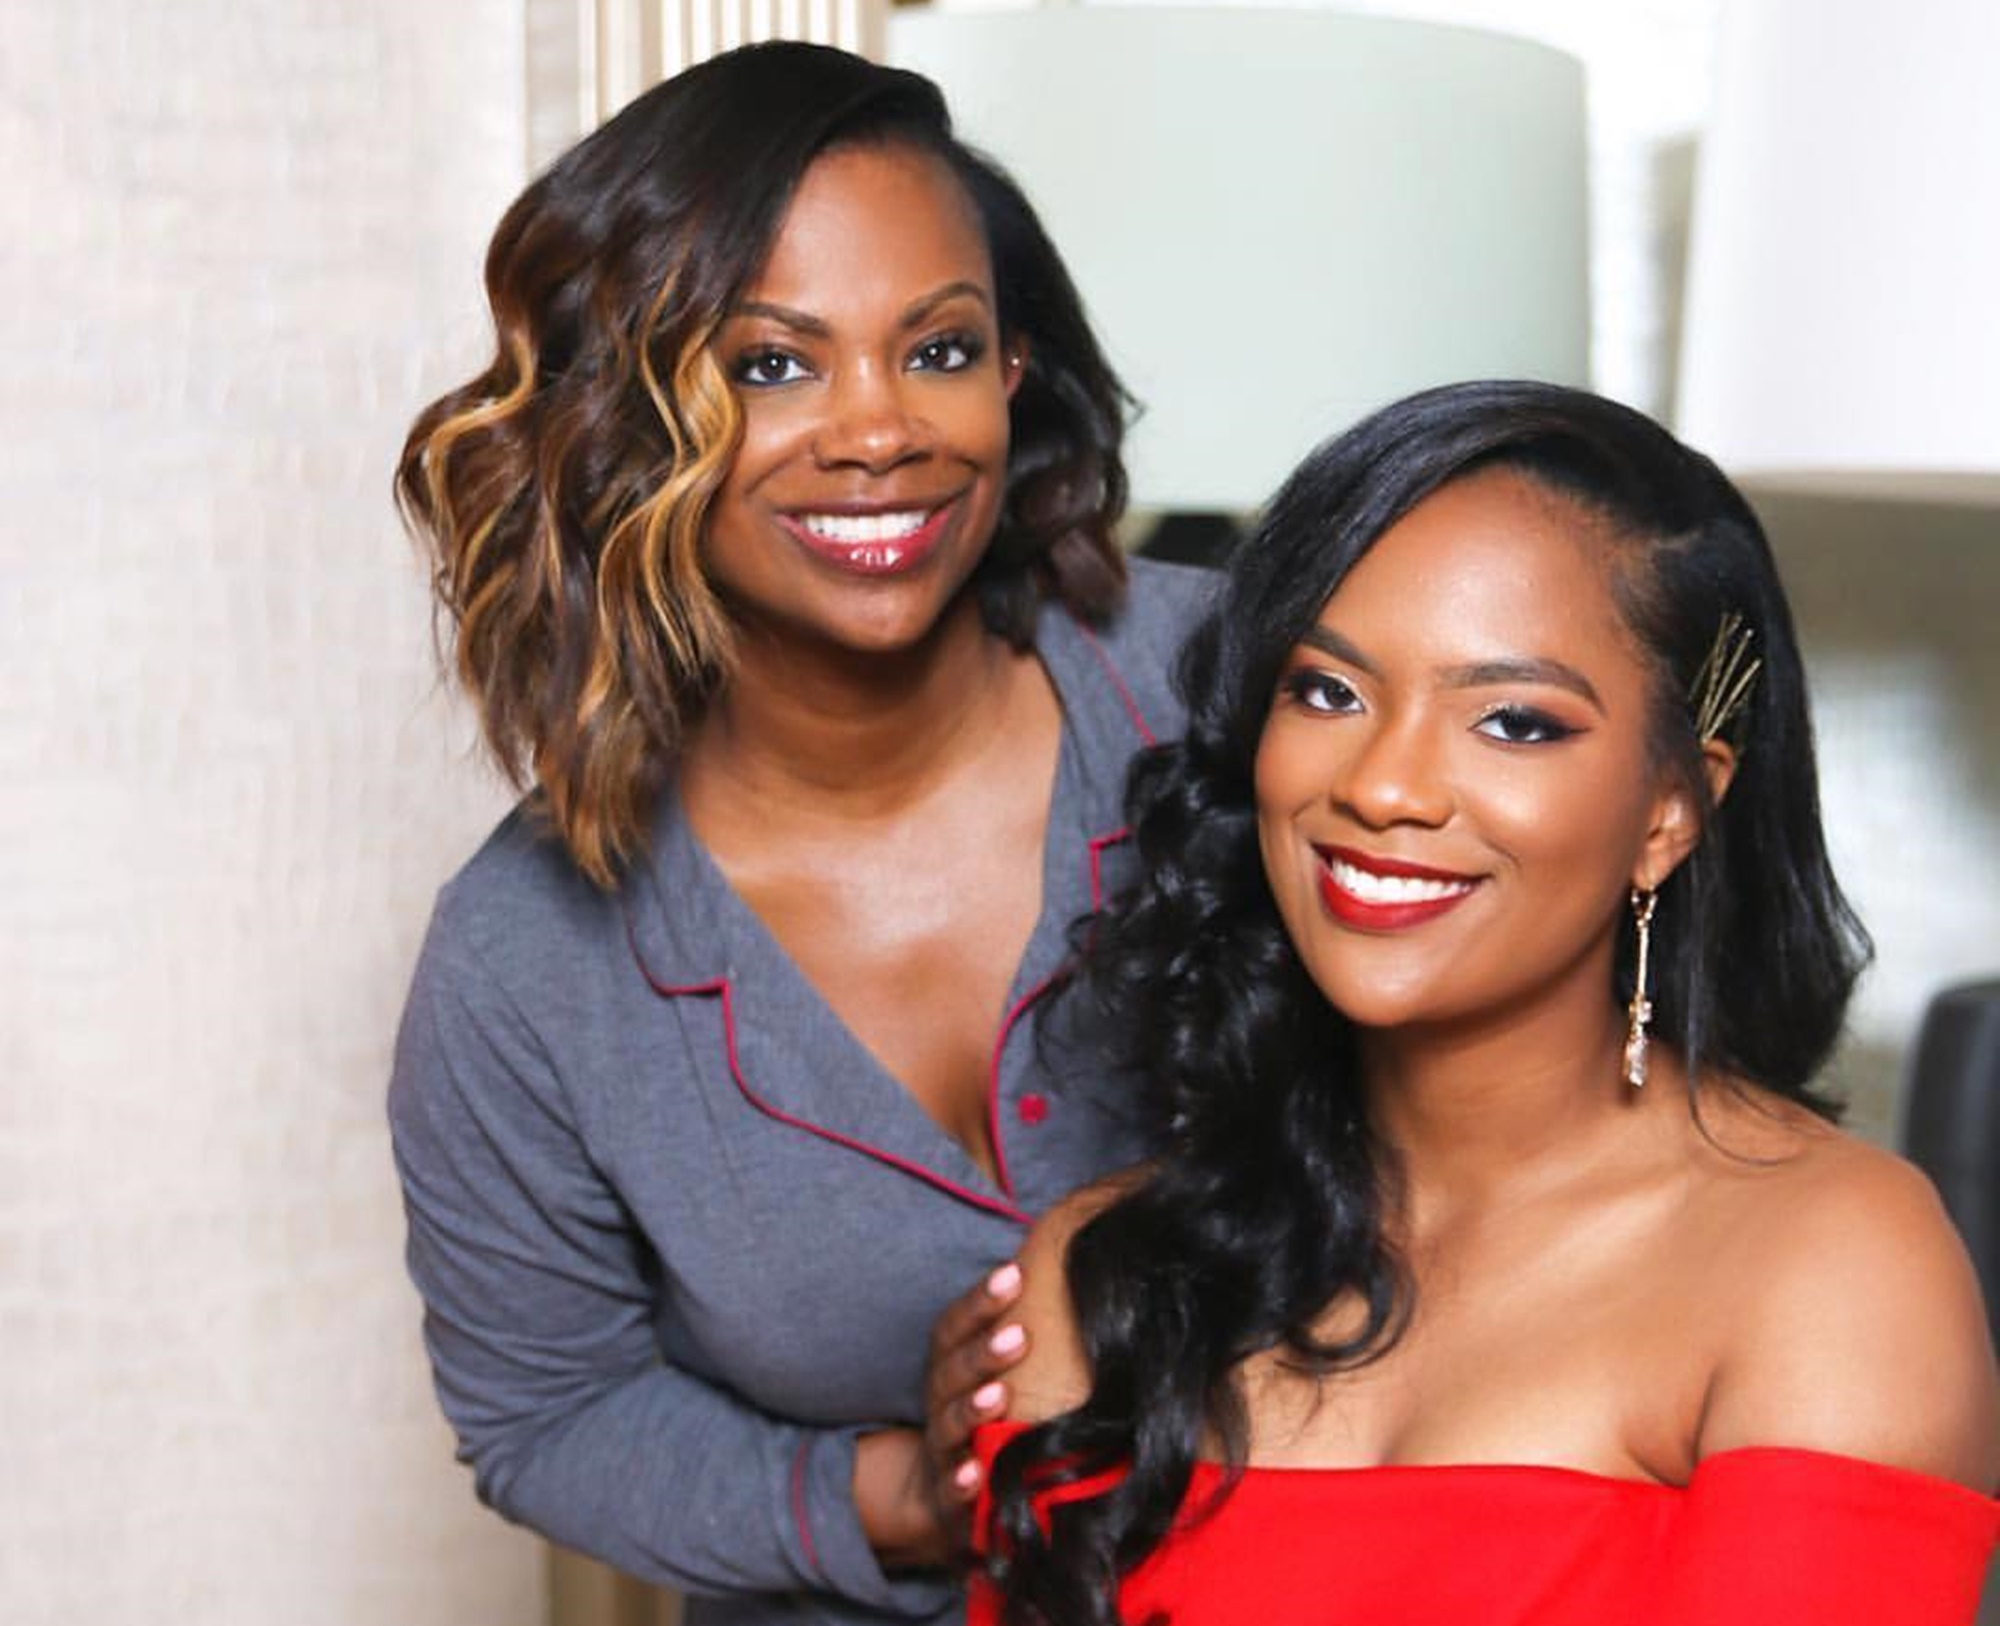 kandi-burruss-posts-gorgeous-video-of-rileys-prom-dress-fans-say-this-how-rich-people-do-it